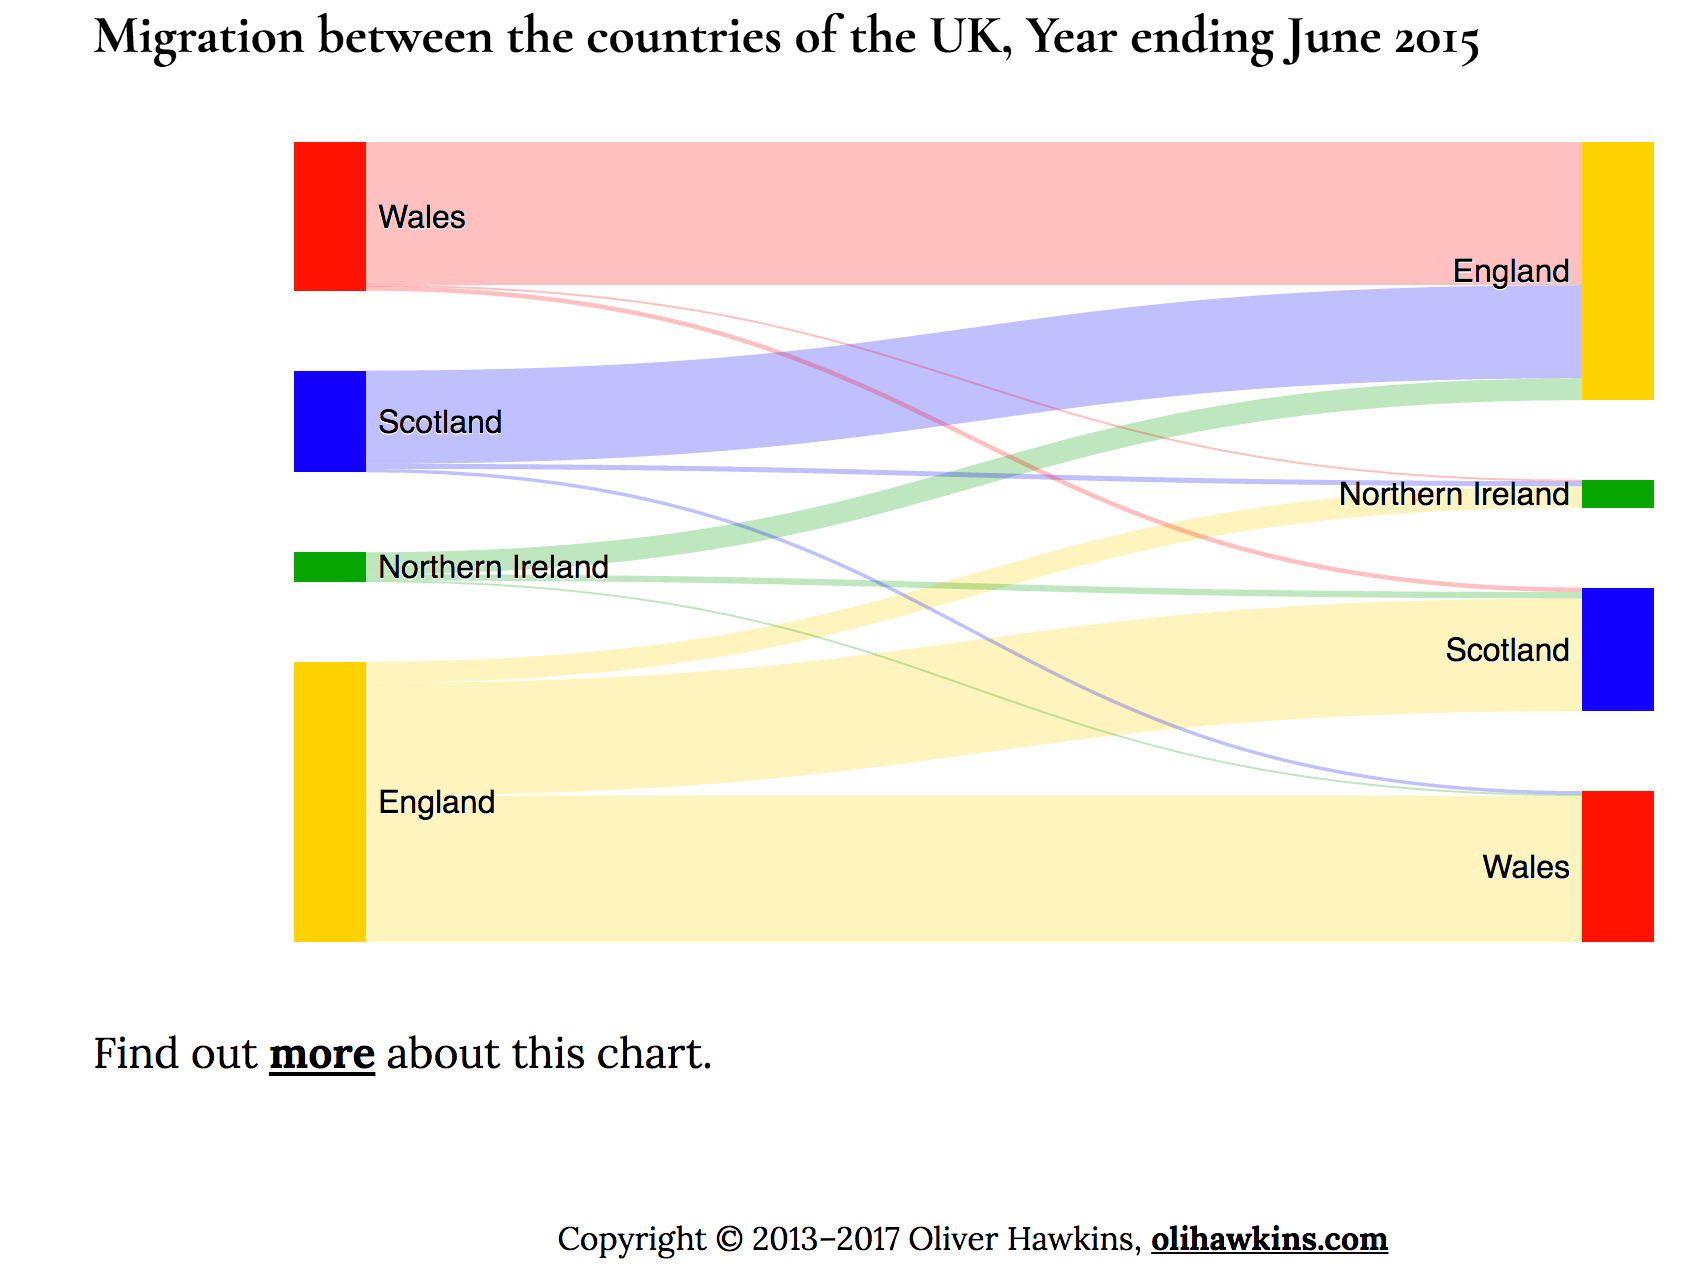 Sankey Diagram R Wiring Libraries Kenwood Model Kdc 4011s Experimenting With Diagrams In And Python U2013 Ouseful Infoby Oli Hawkins On Visualising Migration Between The Countries Of Uk Which Linked